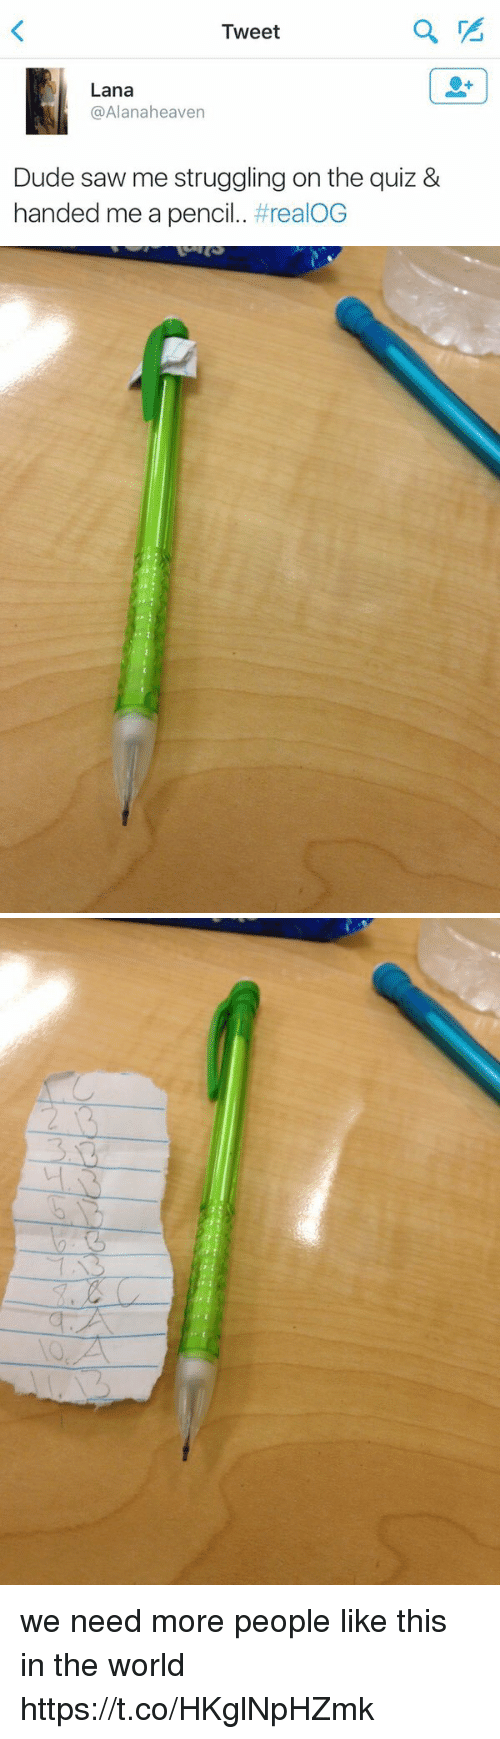 Dude, Memes, and Saw: Tweet  Lana  @Alanaheaven  Dude saw me struggling on the quiz &  handed me a pencil. we need more people like this in the world https://t.co/HKglNpHZmk